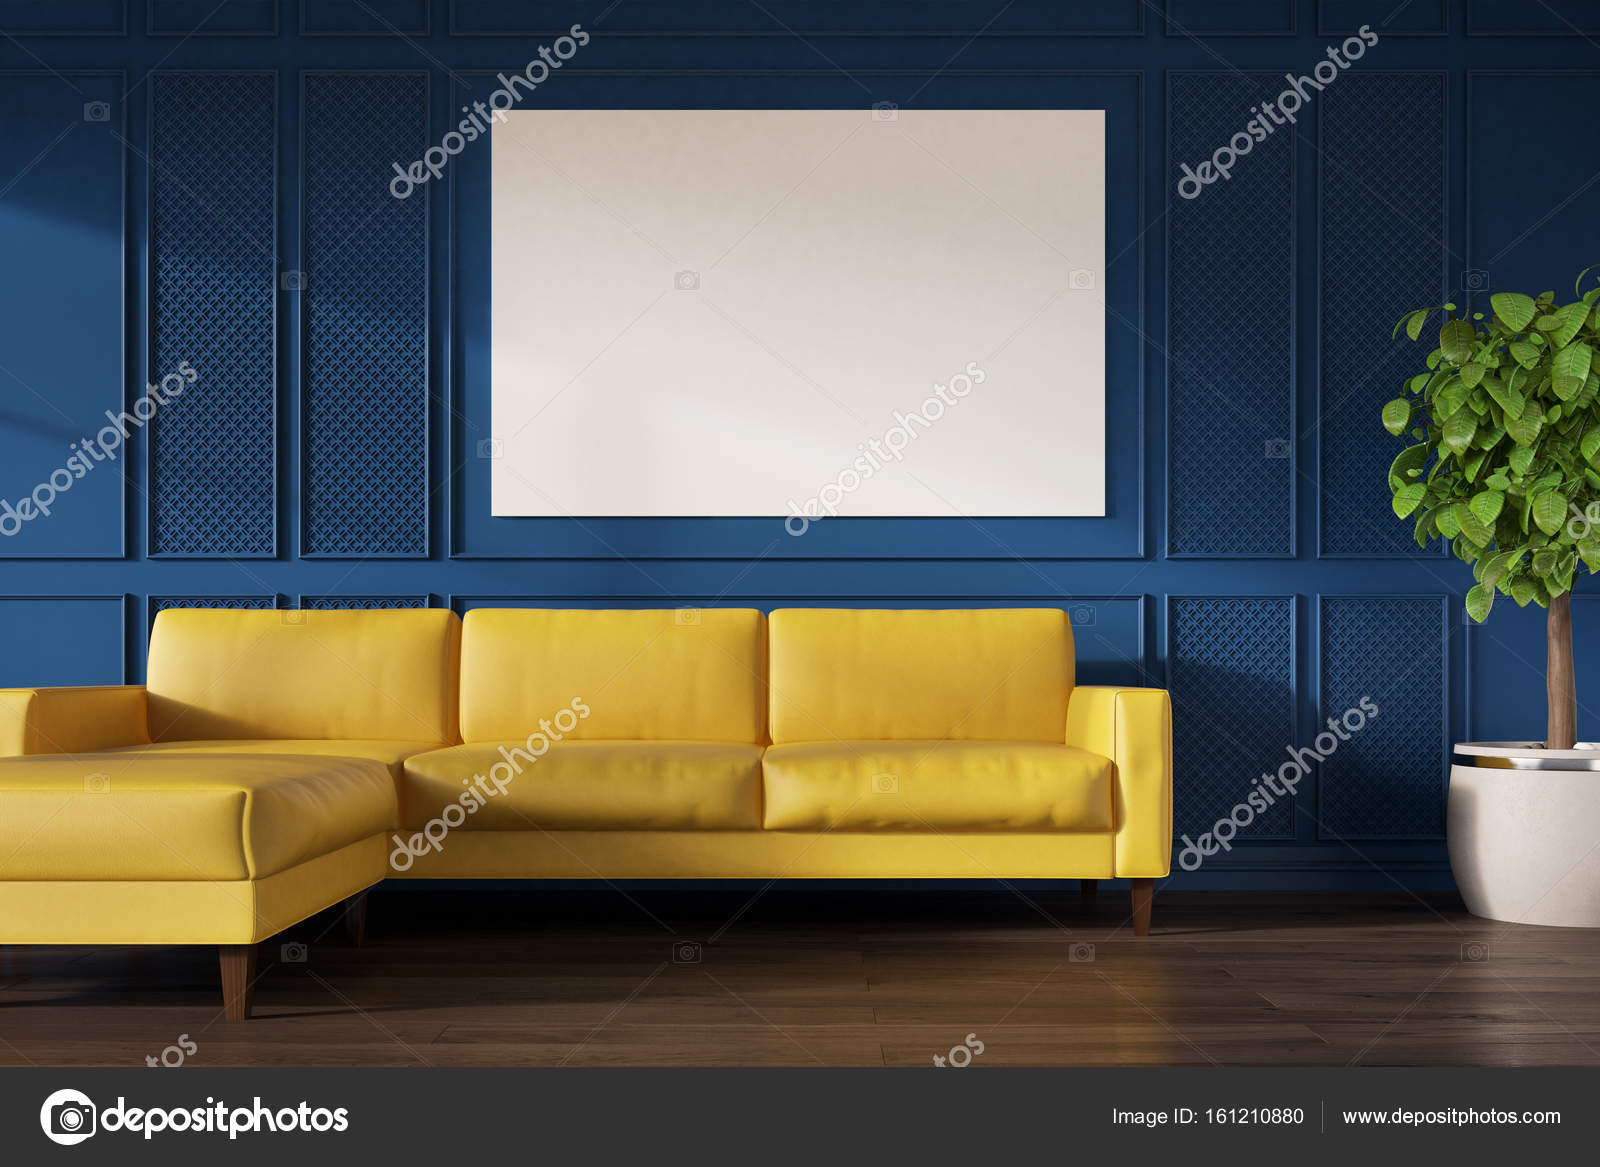 blaue wand gelbe sofa poster stockfoto denisismagilov 161210880. Black Bedroom Furniture Sets. Home Design Ideas